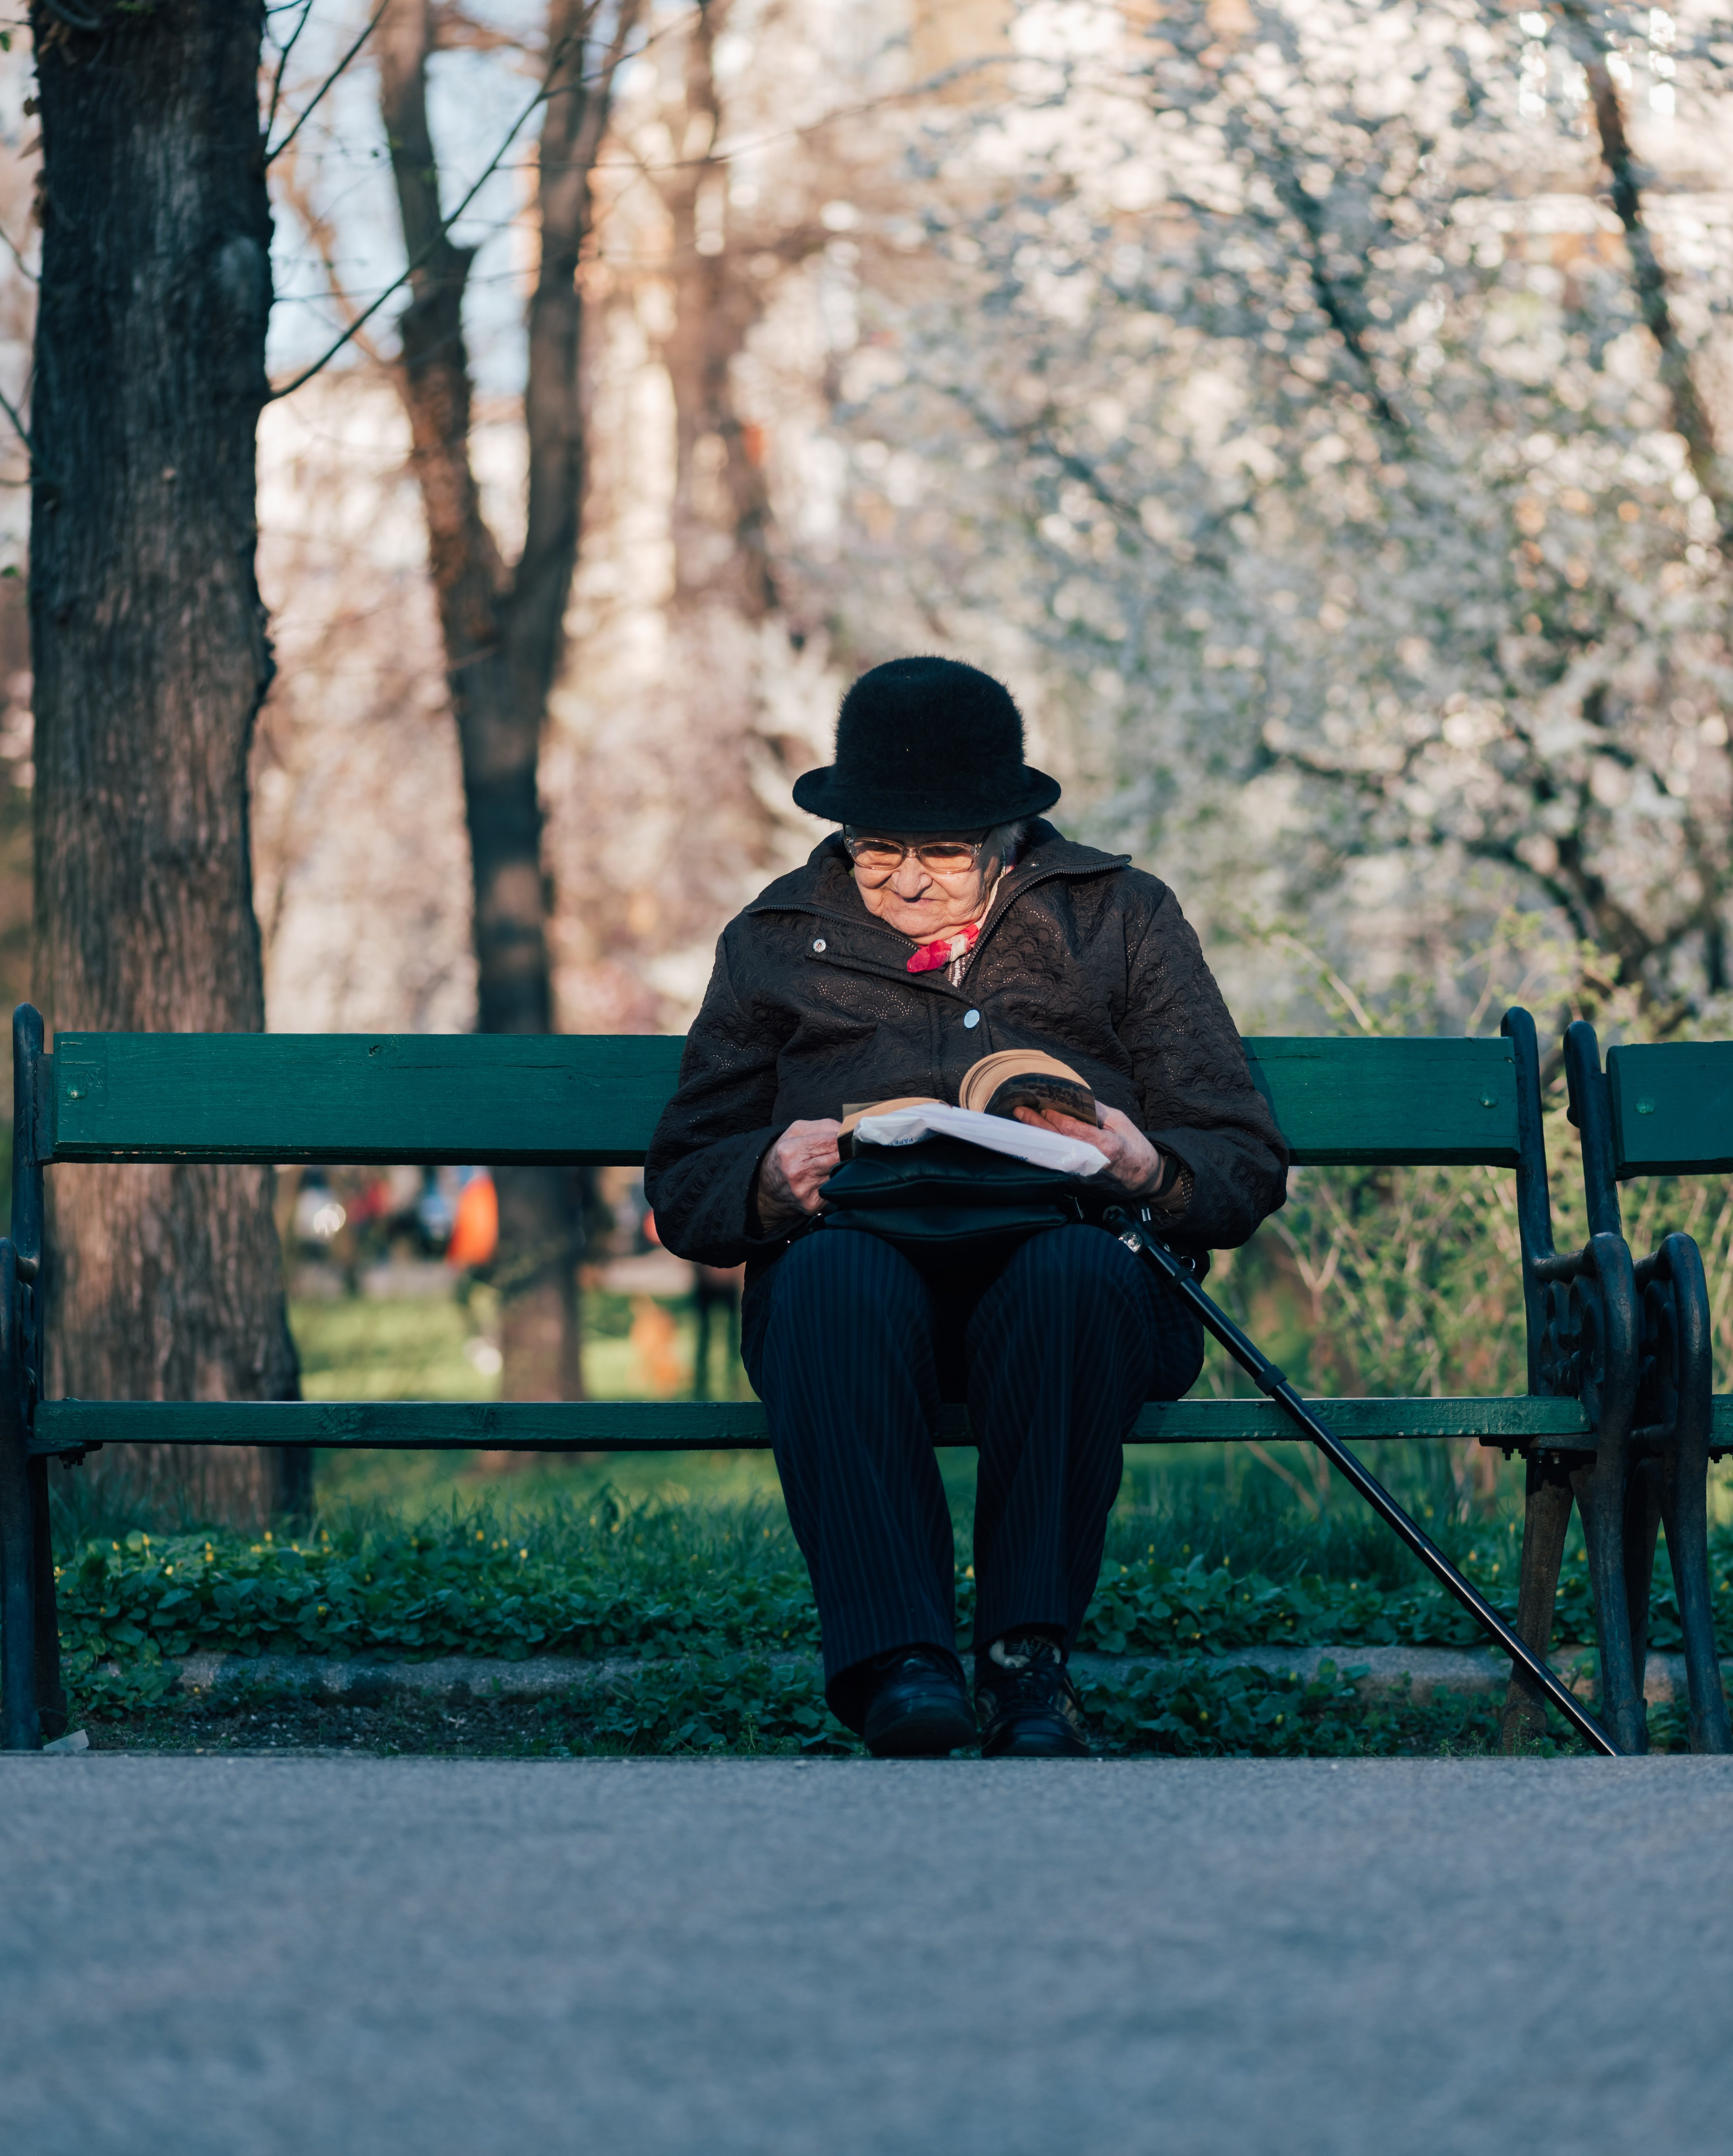 An ageing mother taking a moment to read over her letter| Photo by Alex Blăjan on Unsplash